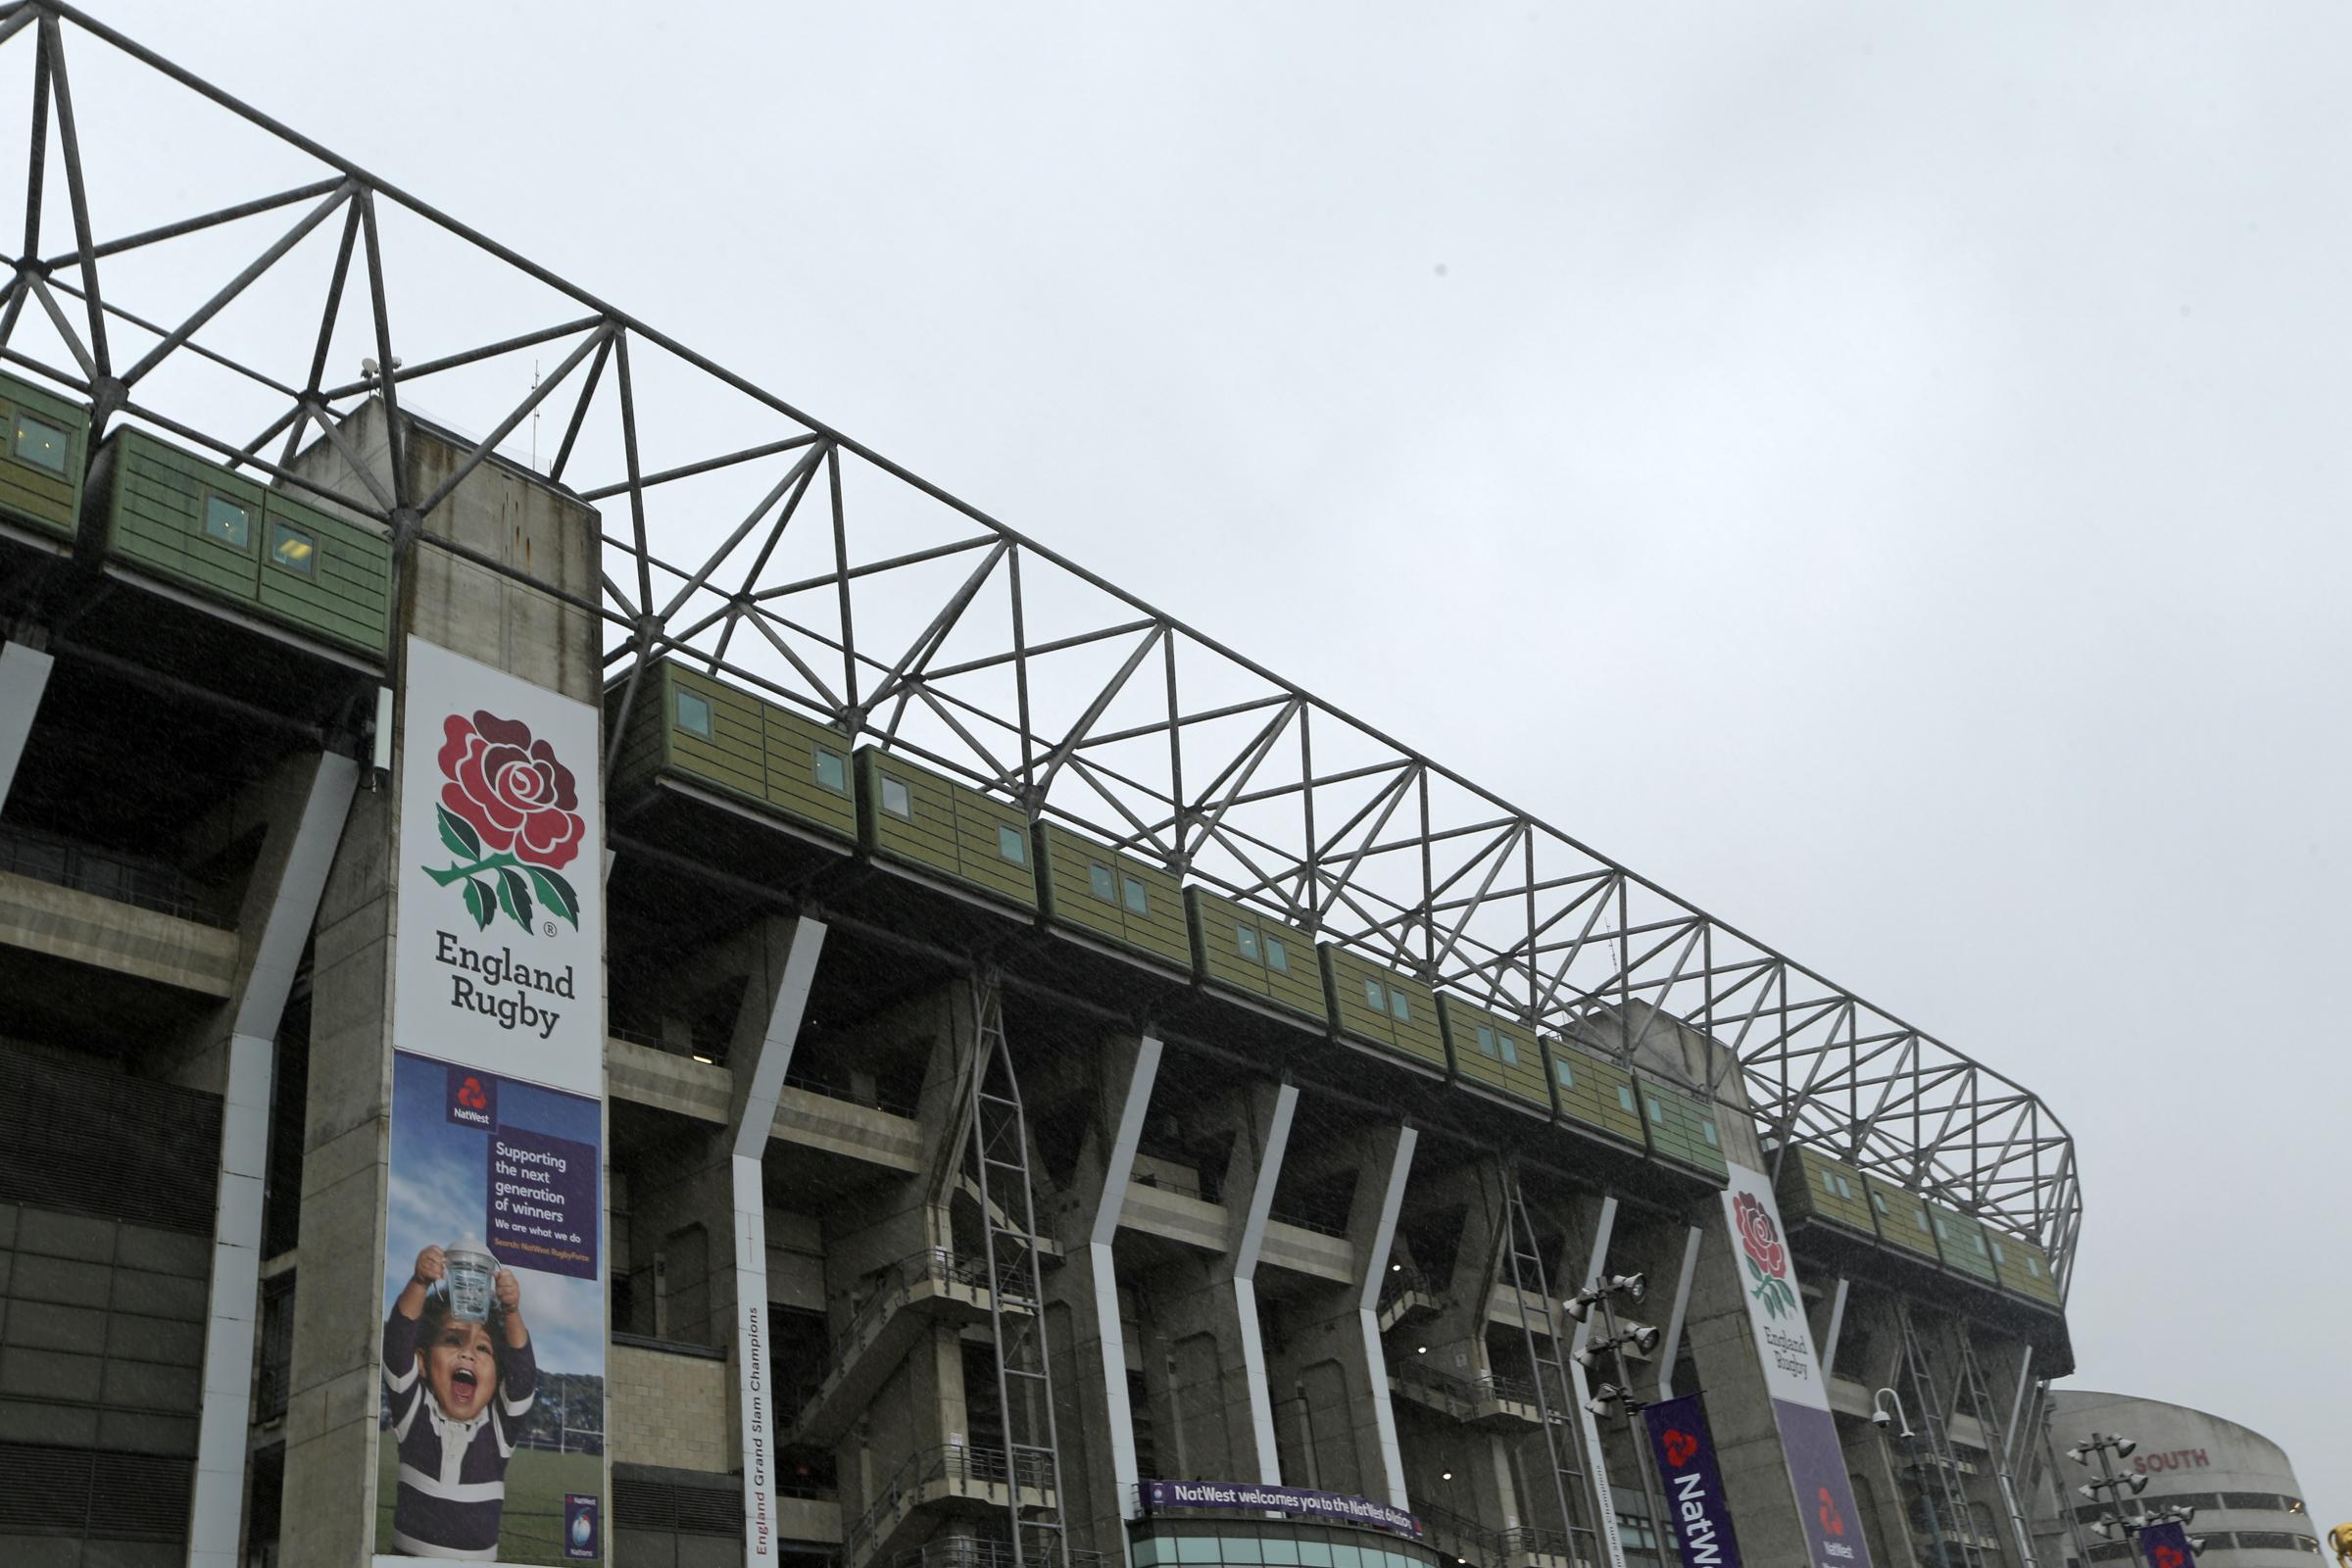 Twickenham will host this weekend's international between England and New Zealand